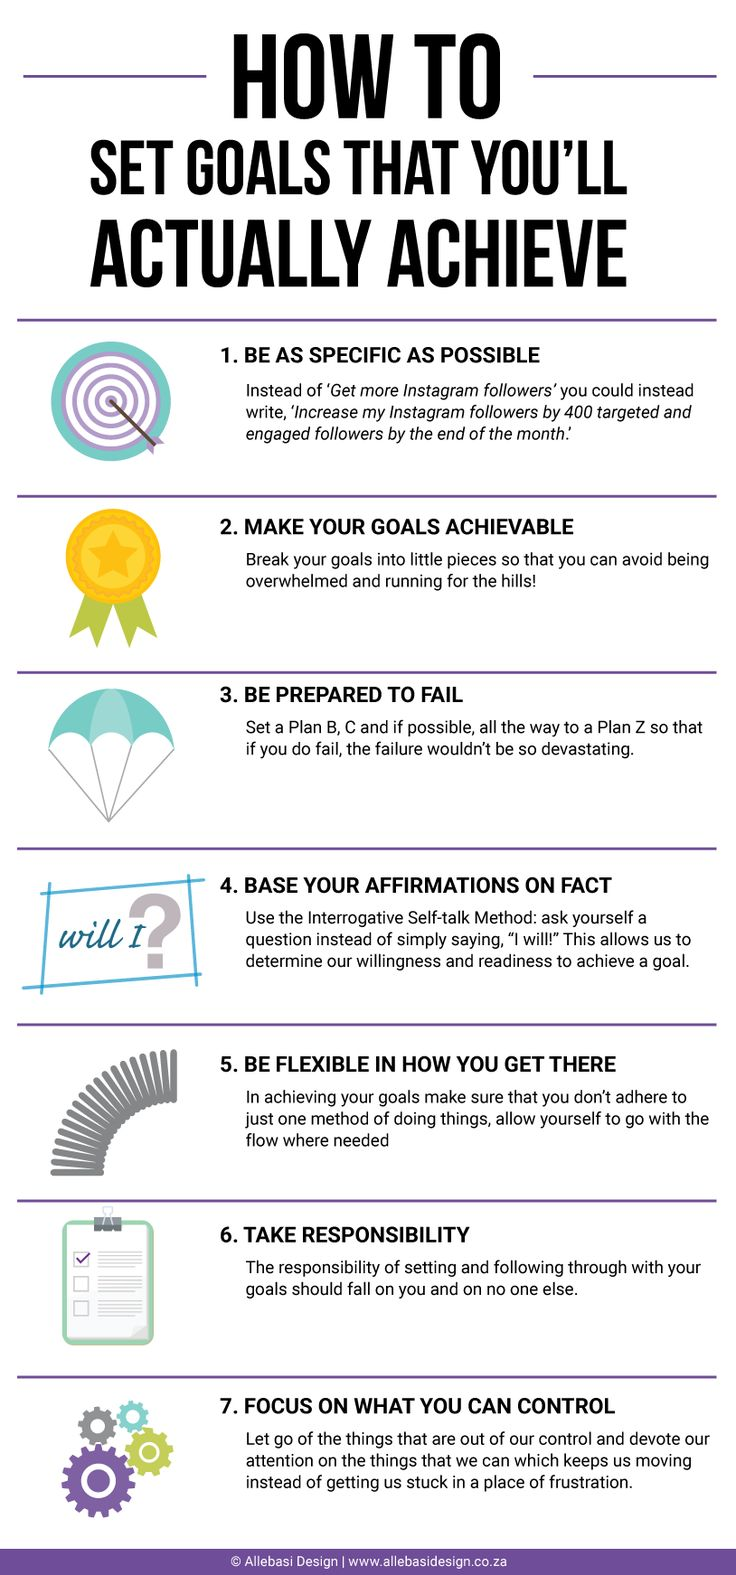 worksheet Jim Rohn Goal Setting Worksheet 68 best entrepreneur productivity goal setting images on how to set goals that youll actually reach